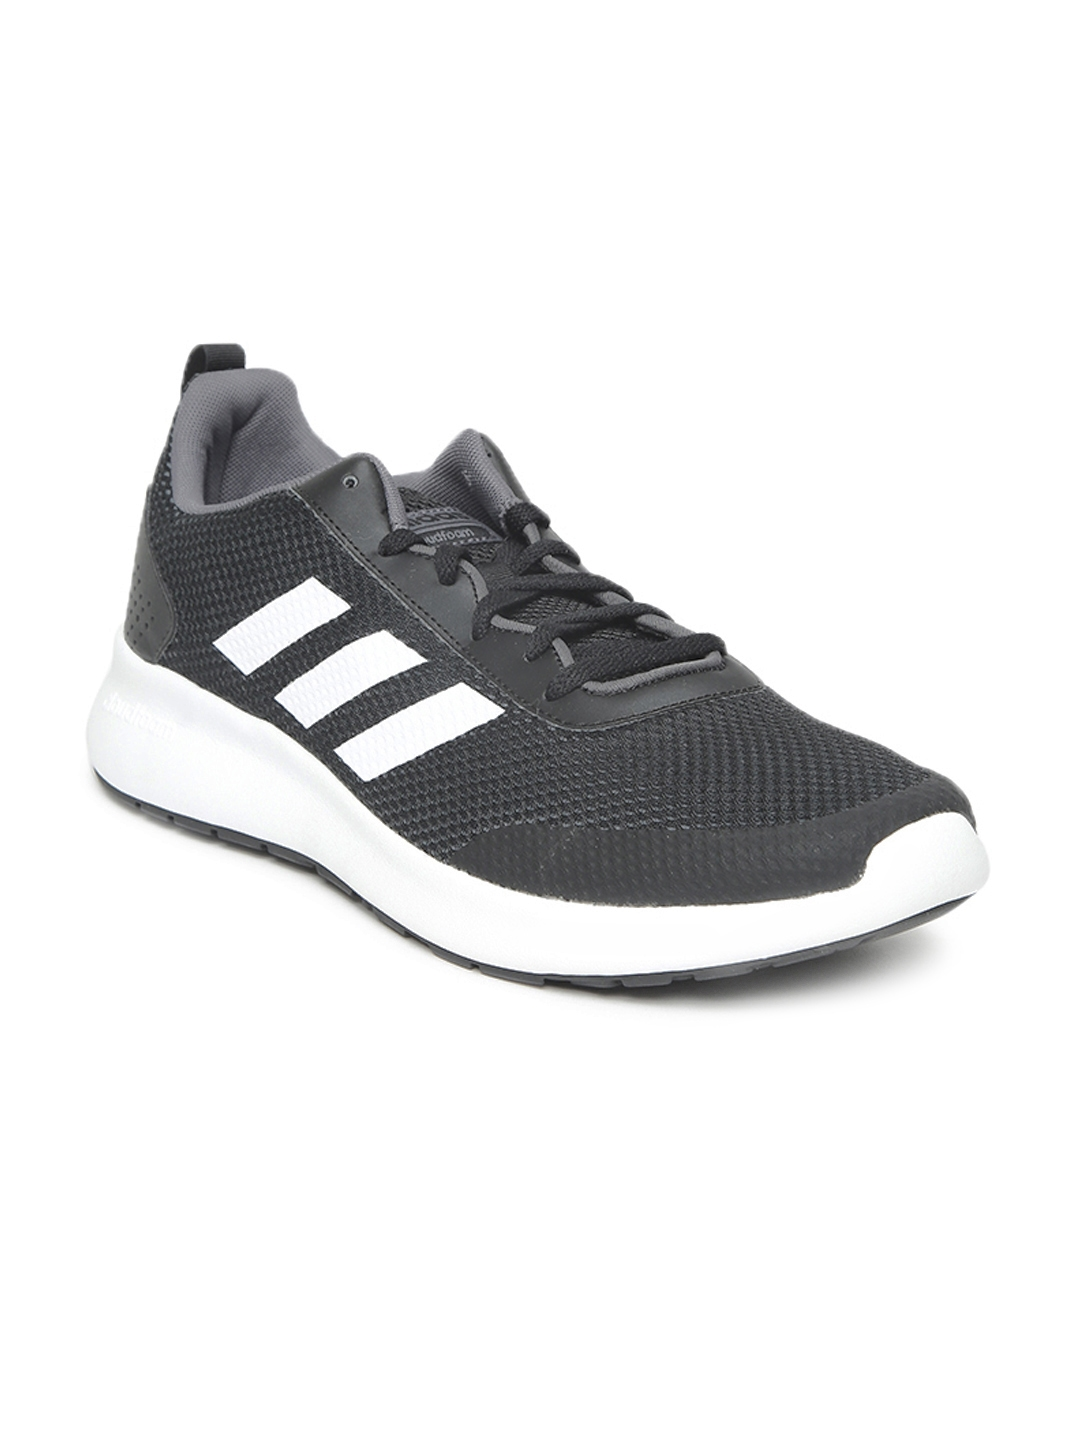 a088845e676 Buy ADIDAS Men Black ELEMENT RACE Running Shoes - Sports Shoes for ...